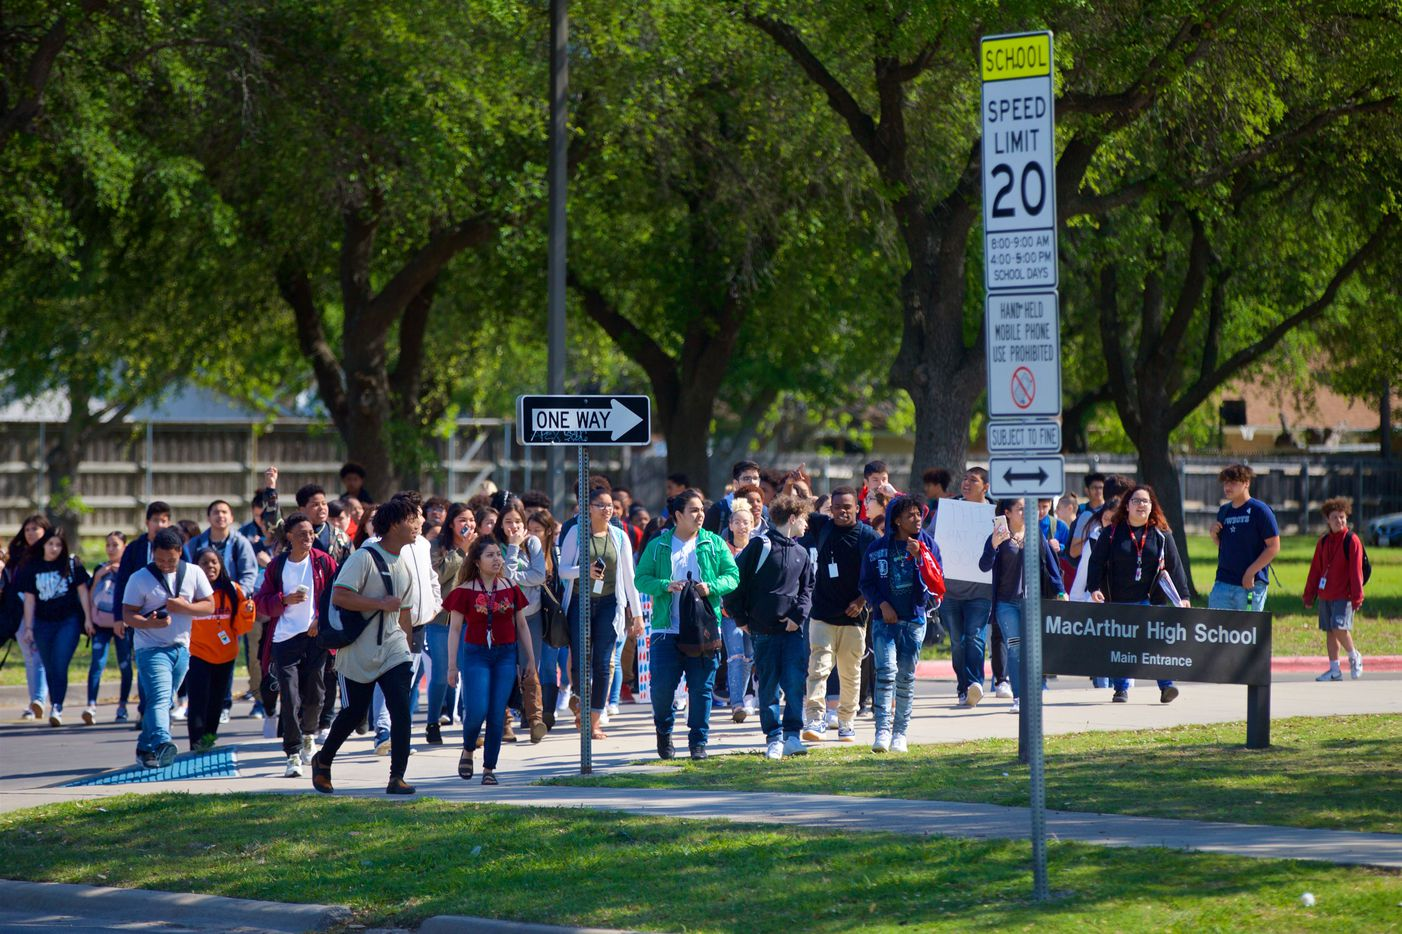 Students walkout of MacArthur High School in Irving to protest gun violence, Friday, April 20, 2018.